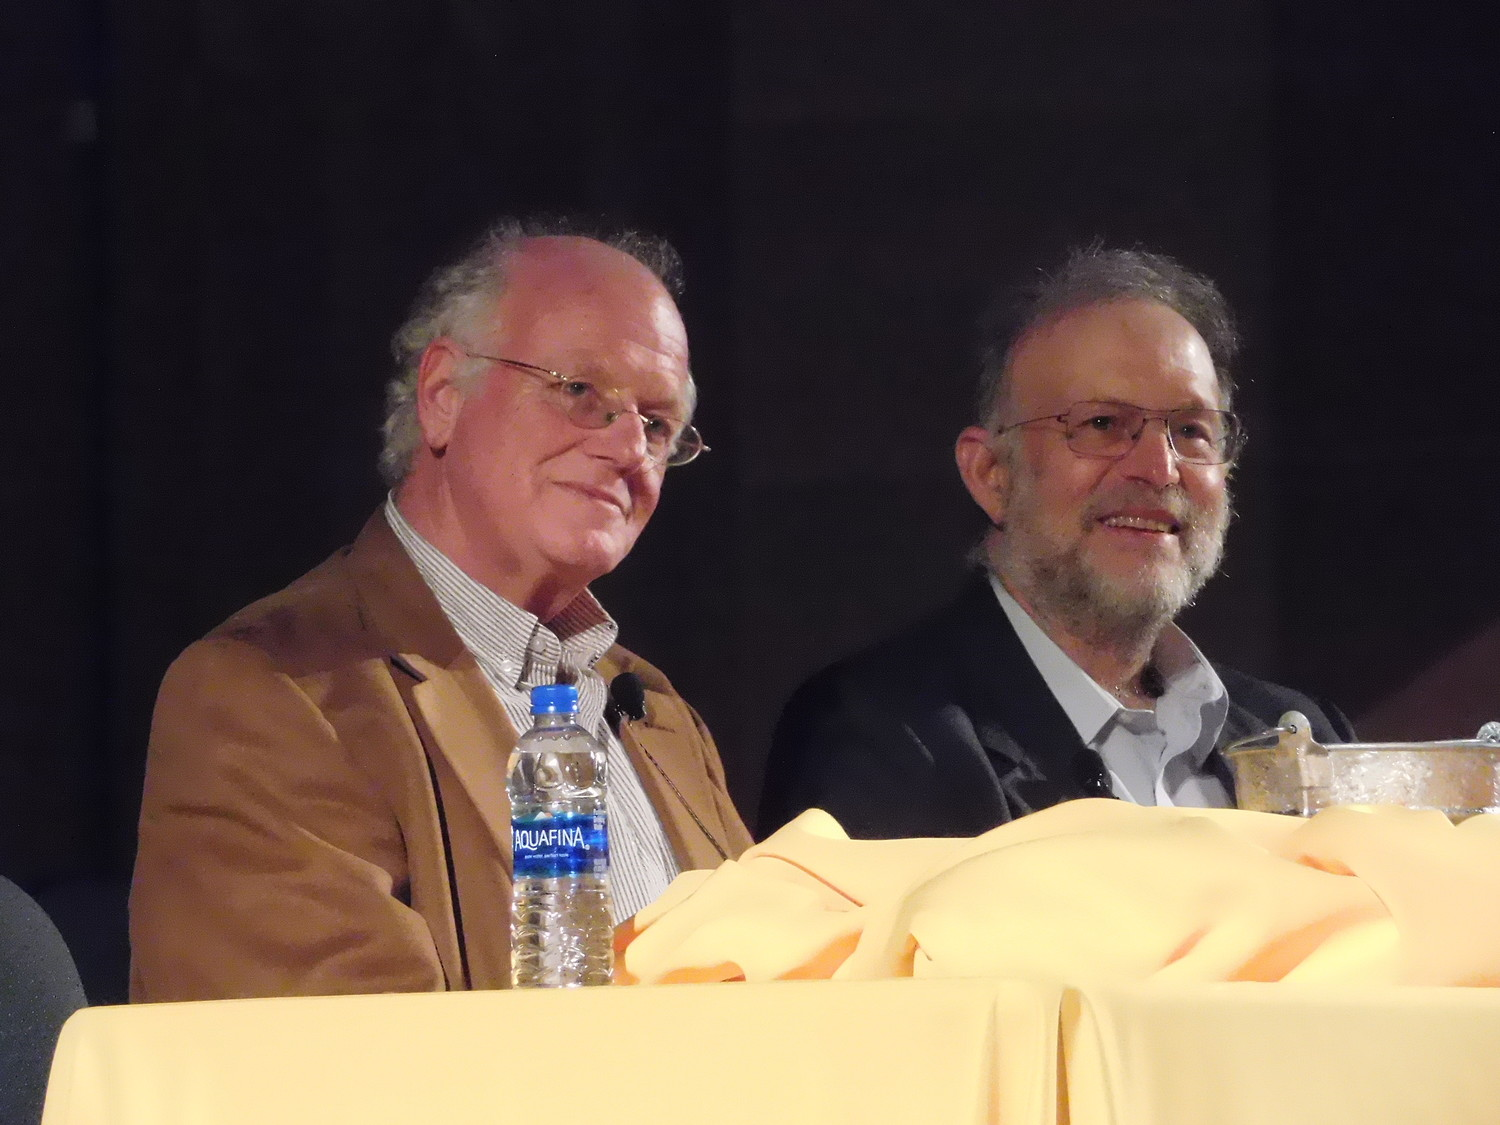 Ben Cohen and Jerry Greenfield on the stage of Adelphi University's Performing Arts Center, sharing the ideals that led to the socially conscious focus of Ben & Jerry's Ice Cream.